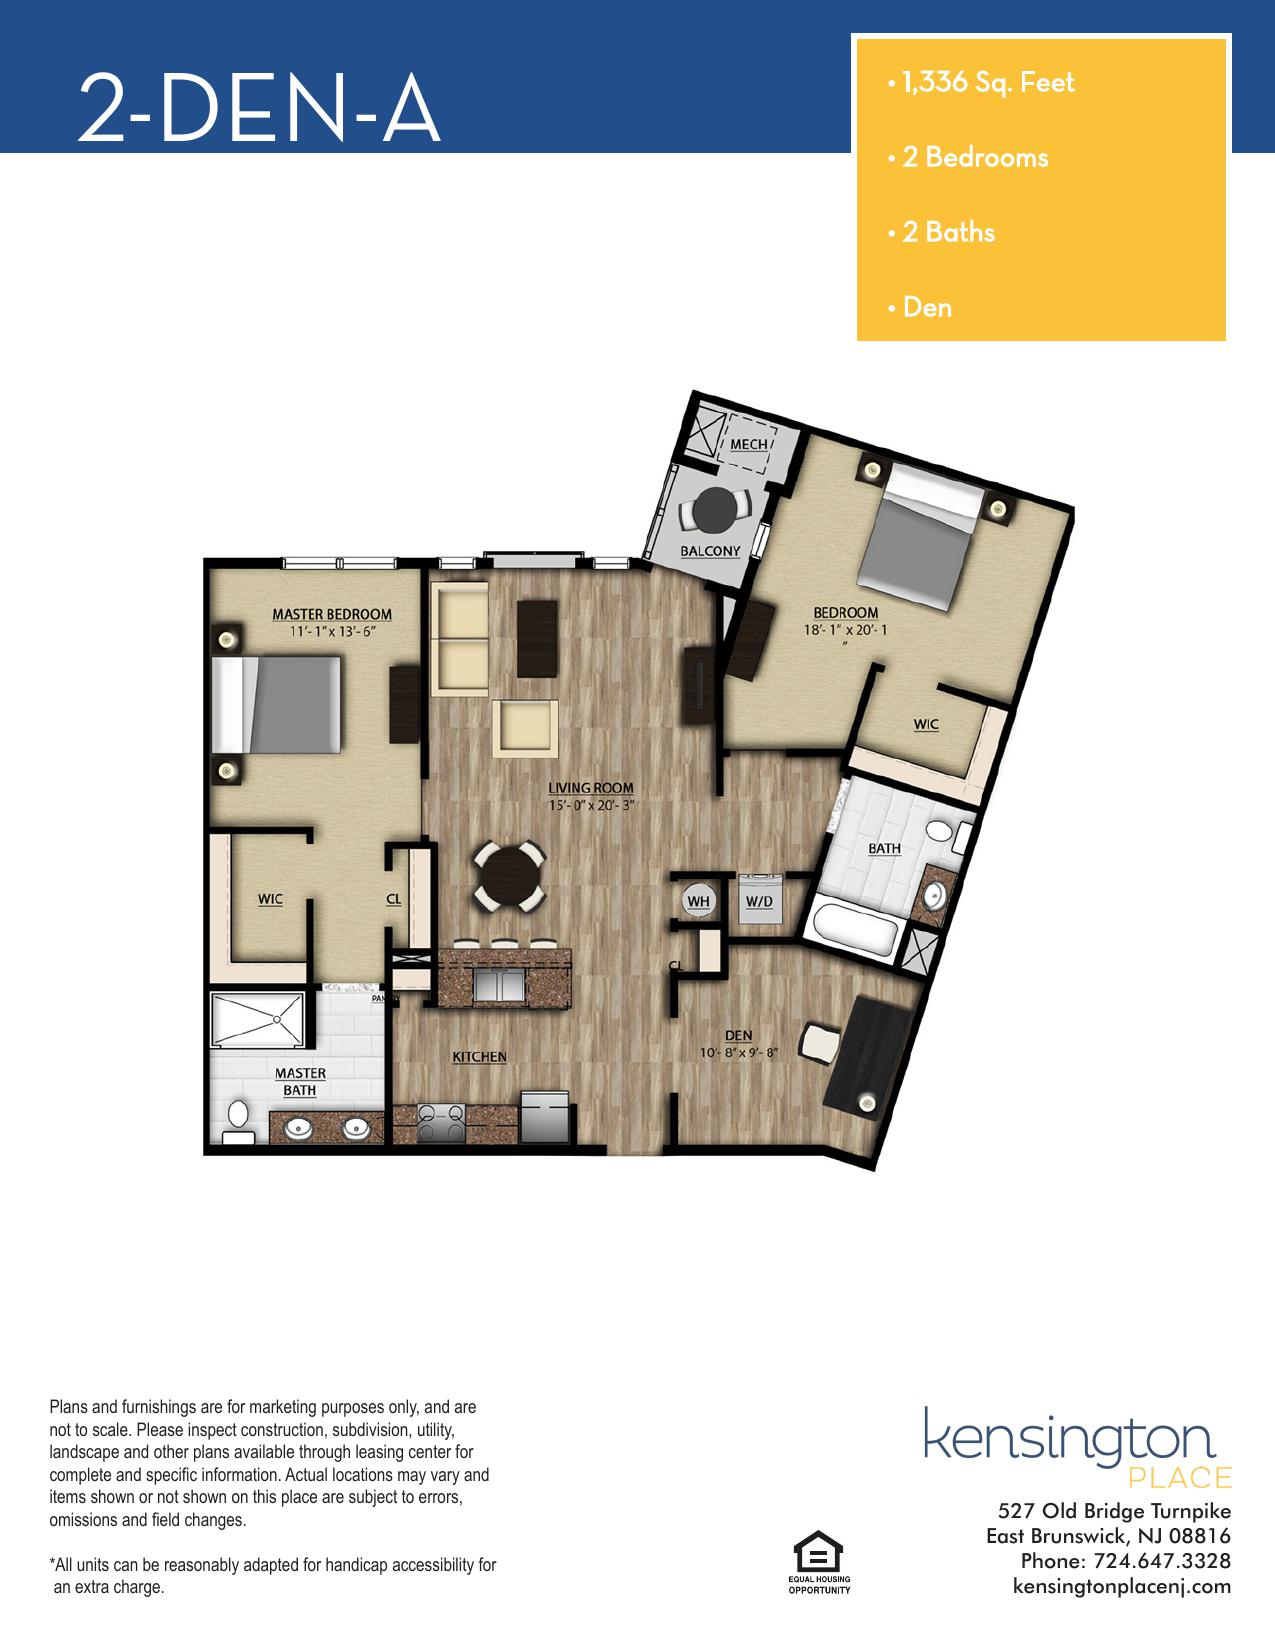 Kensington Place Apartment Floor Plan 2 DEN A